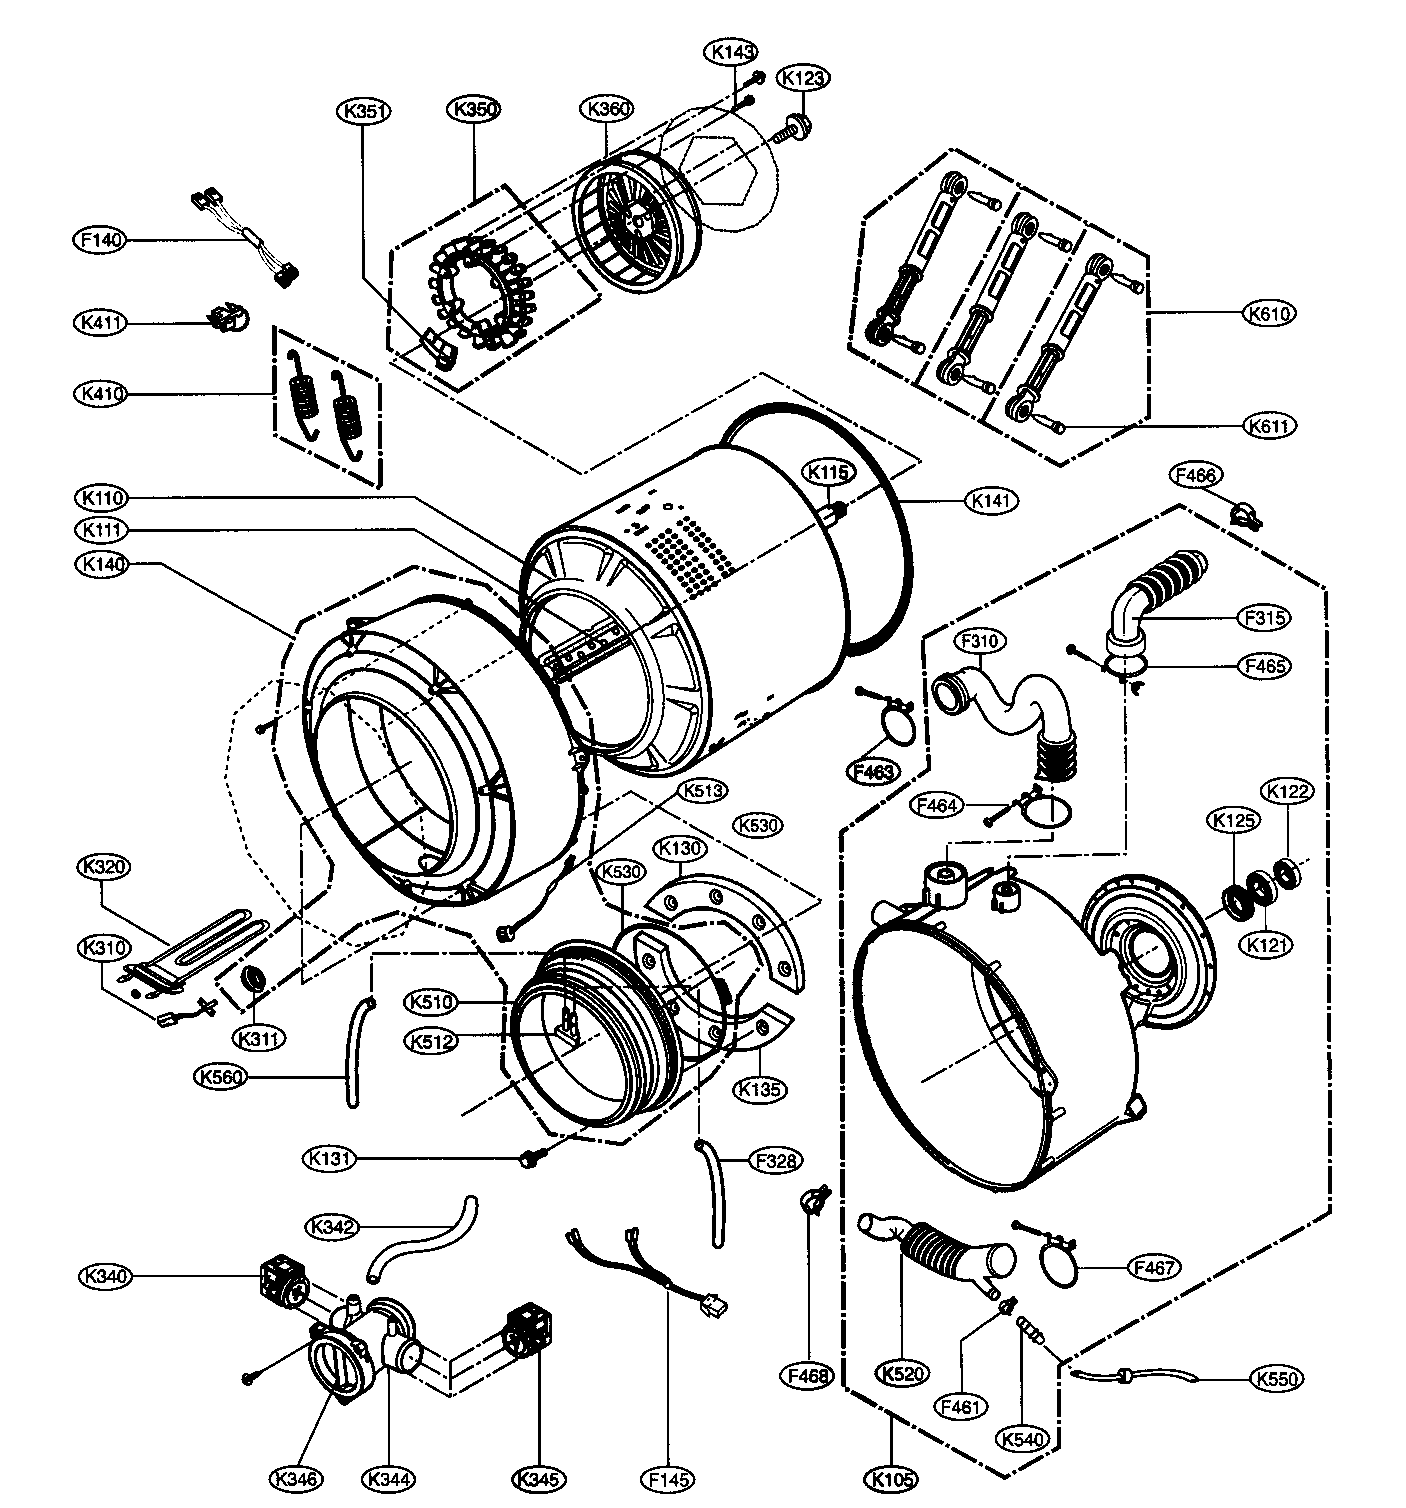 DRUM/TUB ASSY Diagram & Parts List for Model WM2496HSM LG